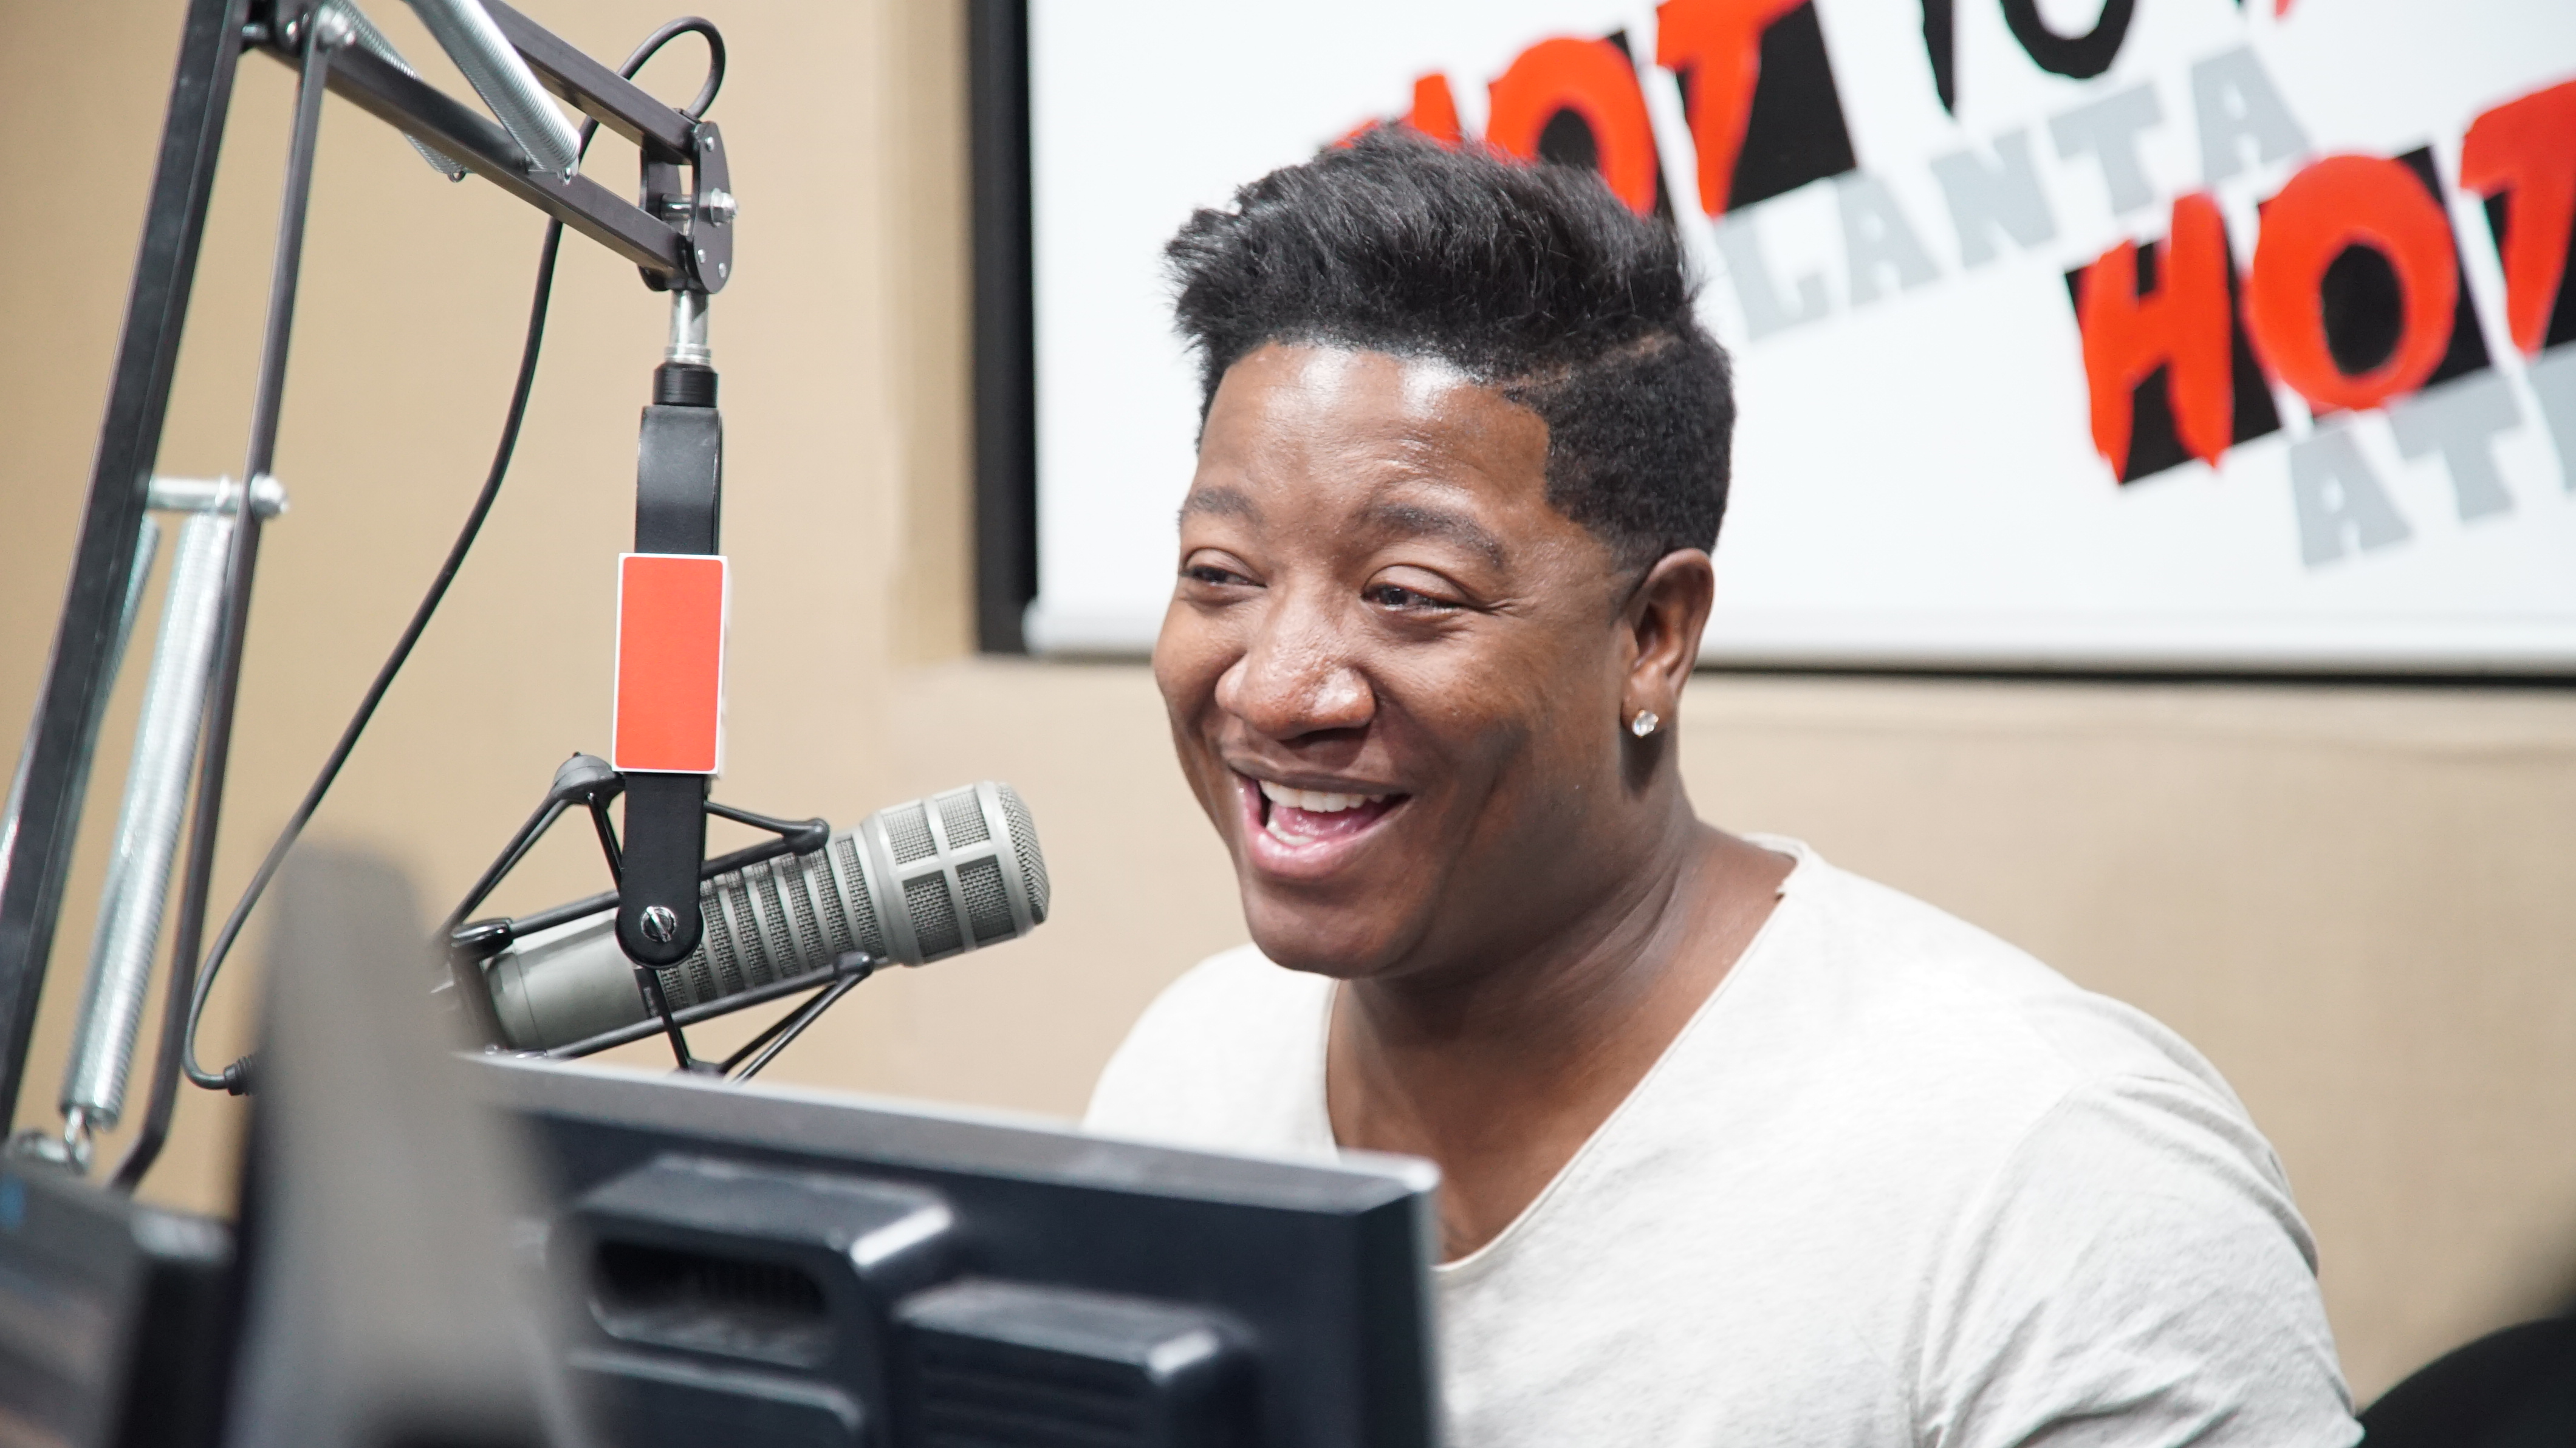 Yung Joc & His Faux Beard Gets Roasted By Twitter